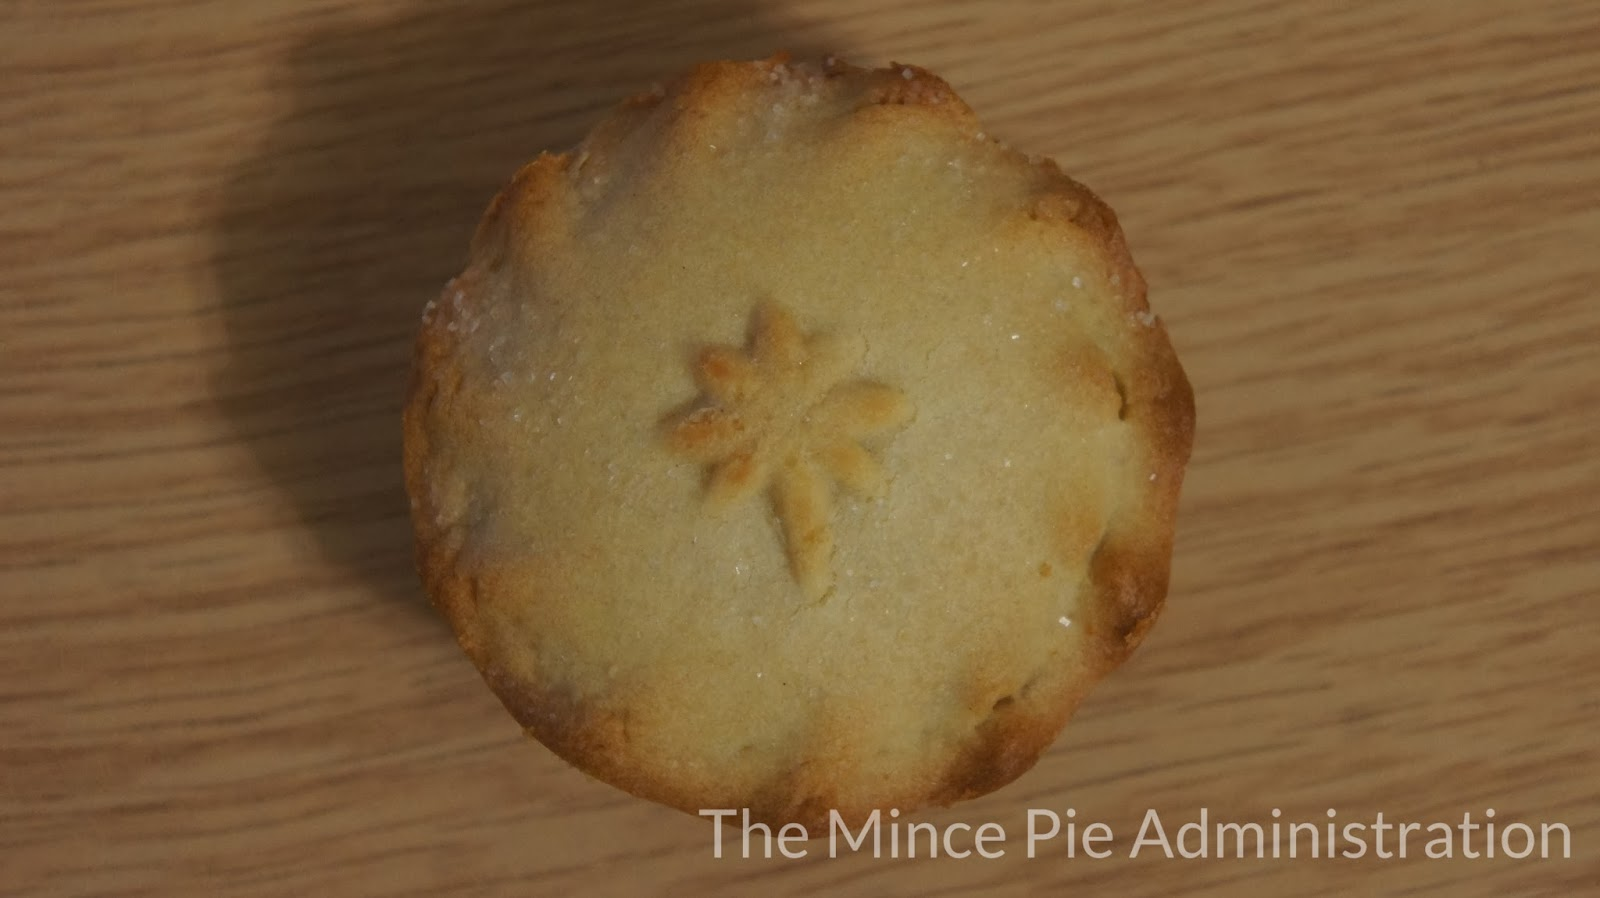 ... Mince Pie Administration: Waitrose Christmas - 6 Shortcrust Mince Pies